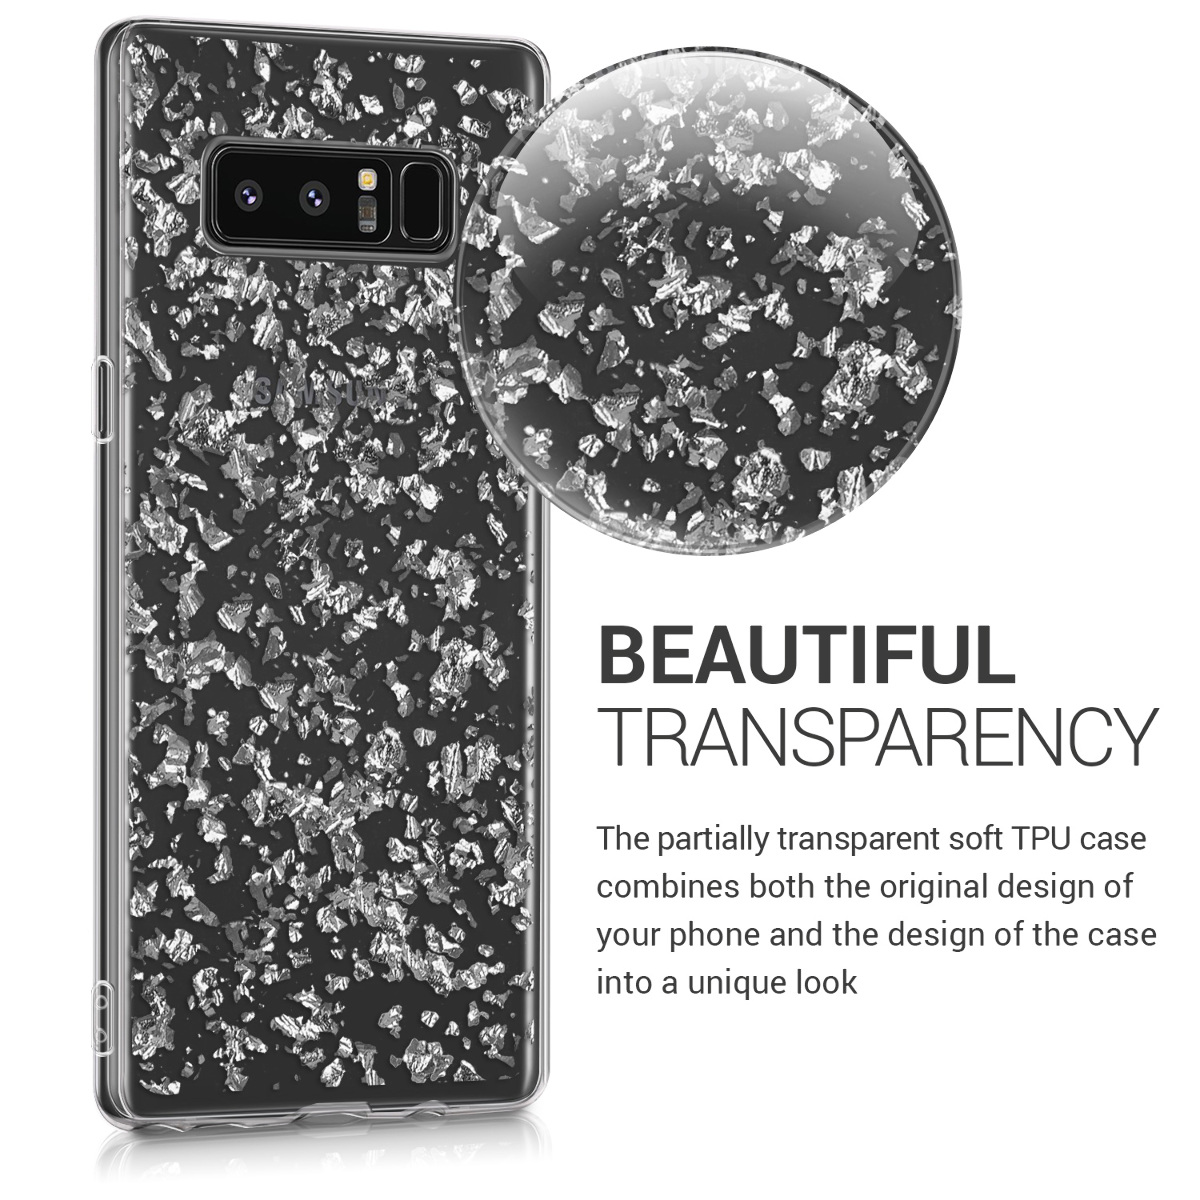 Tpu Silicone Crystal Back Case For Samsung Galaxy Note 8 Ebay Flower Xiaomi Redmi 1 2 Diamond Soft Softcase Kwmobile Clear Smartphone Protective Cover Desired Colour